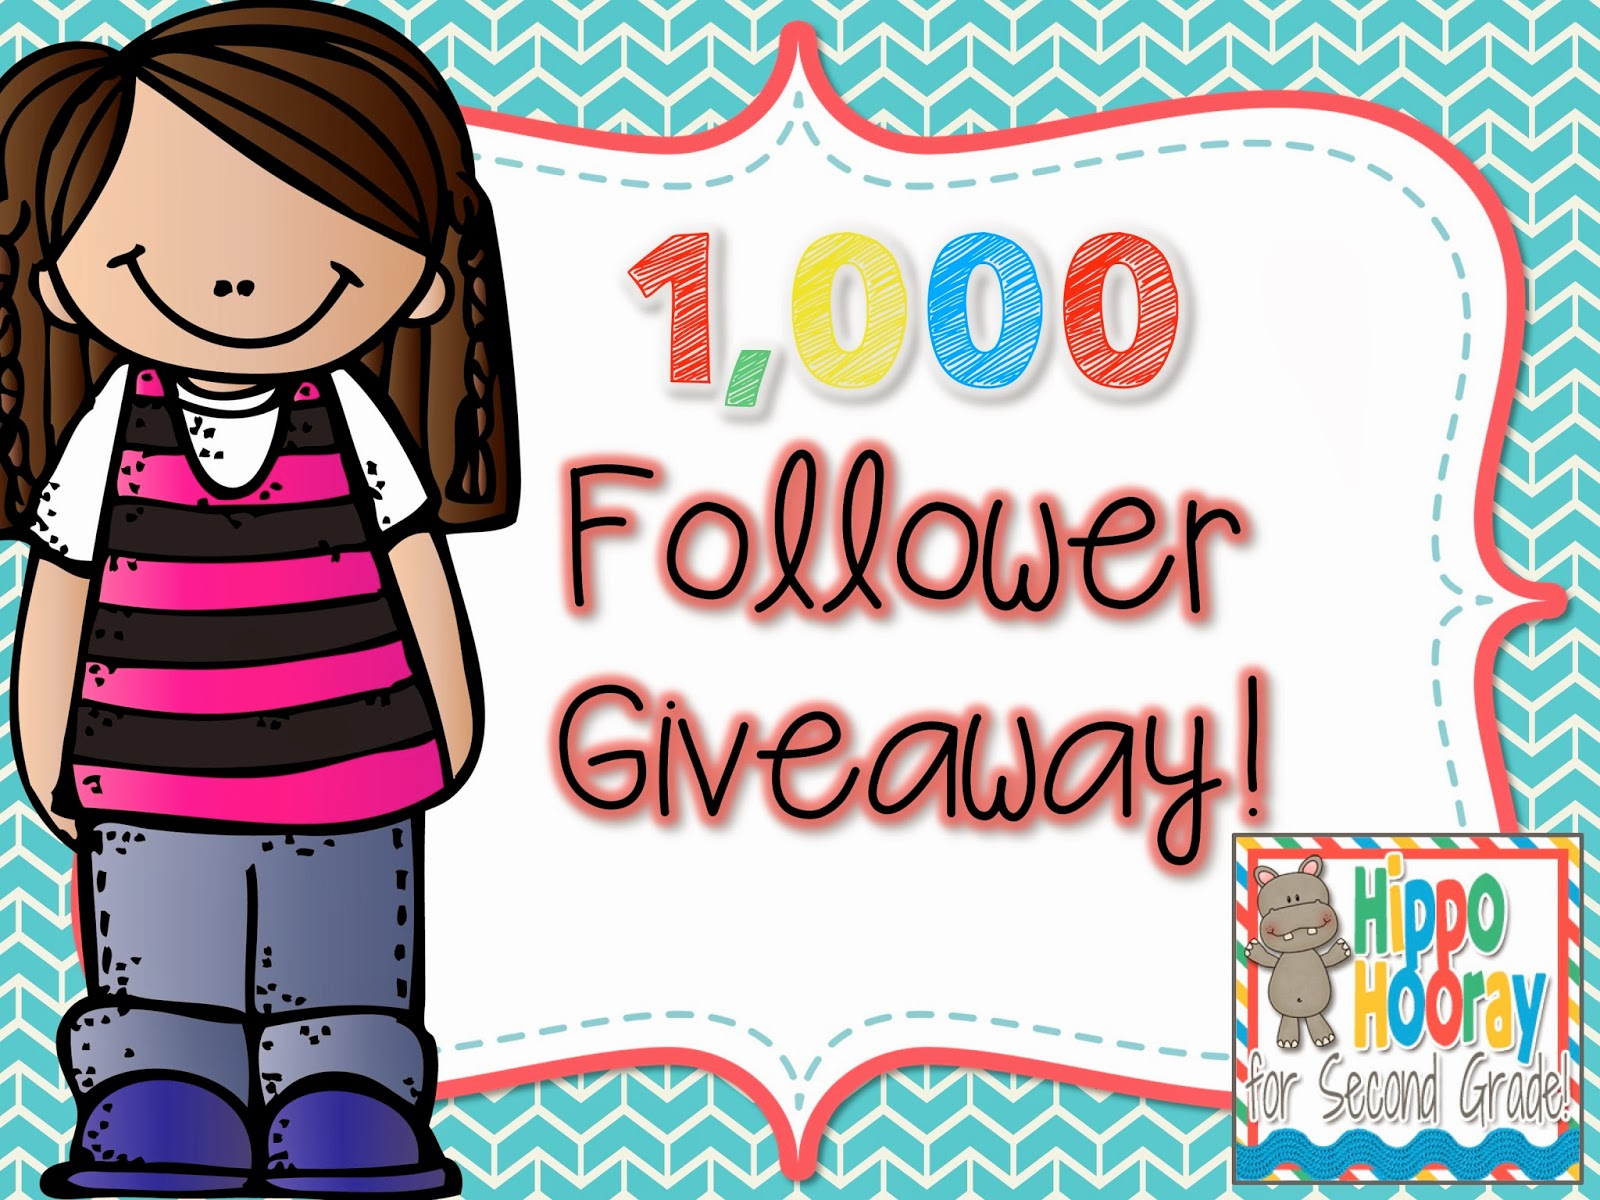 http://hippohoorayforsecondgrade.blogspot.com/2014/02/holy-moly-its-my-1000-follower-giveaway.html